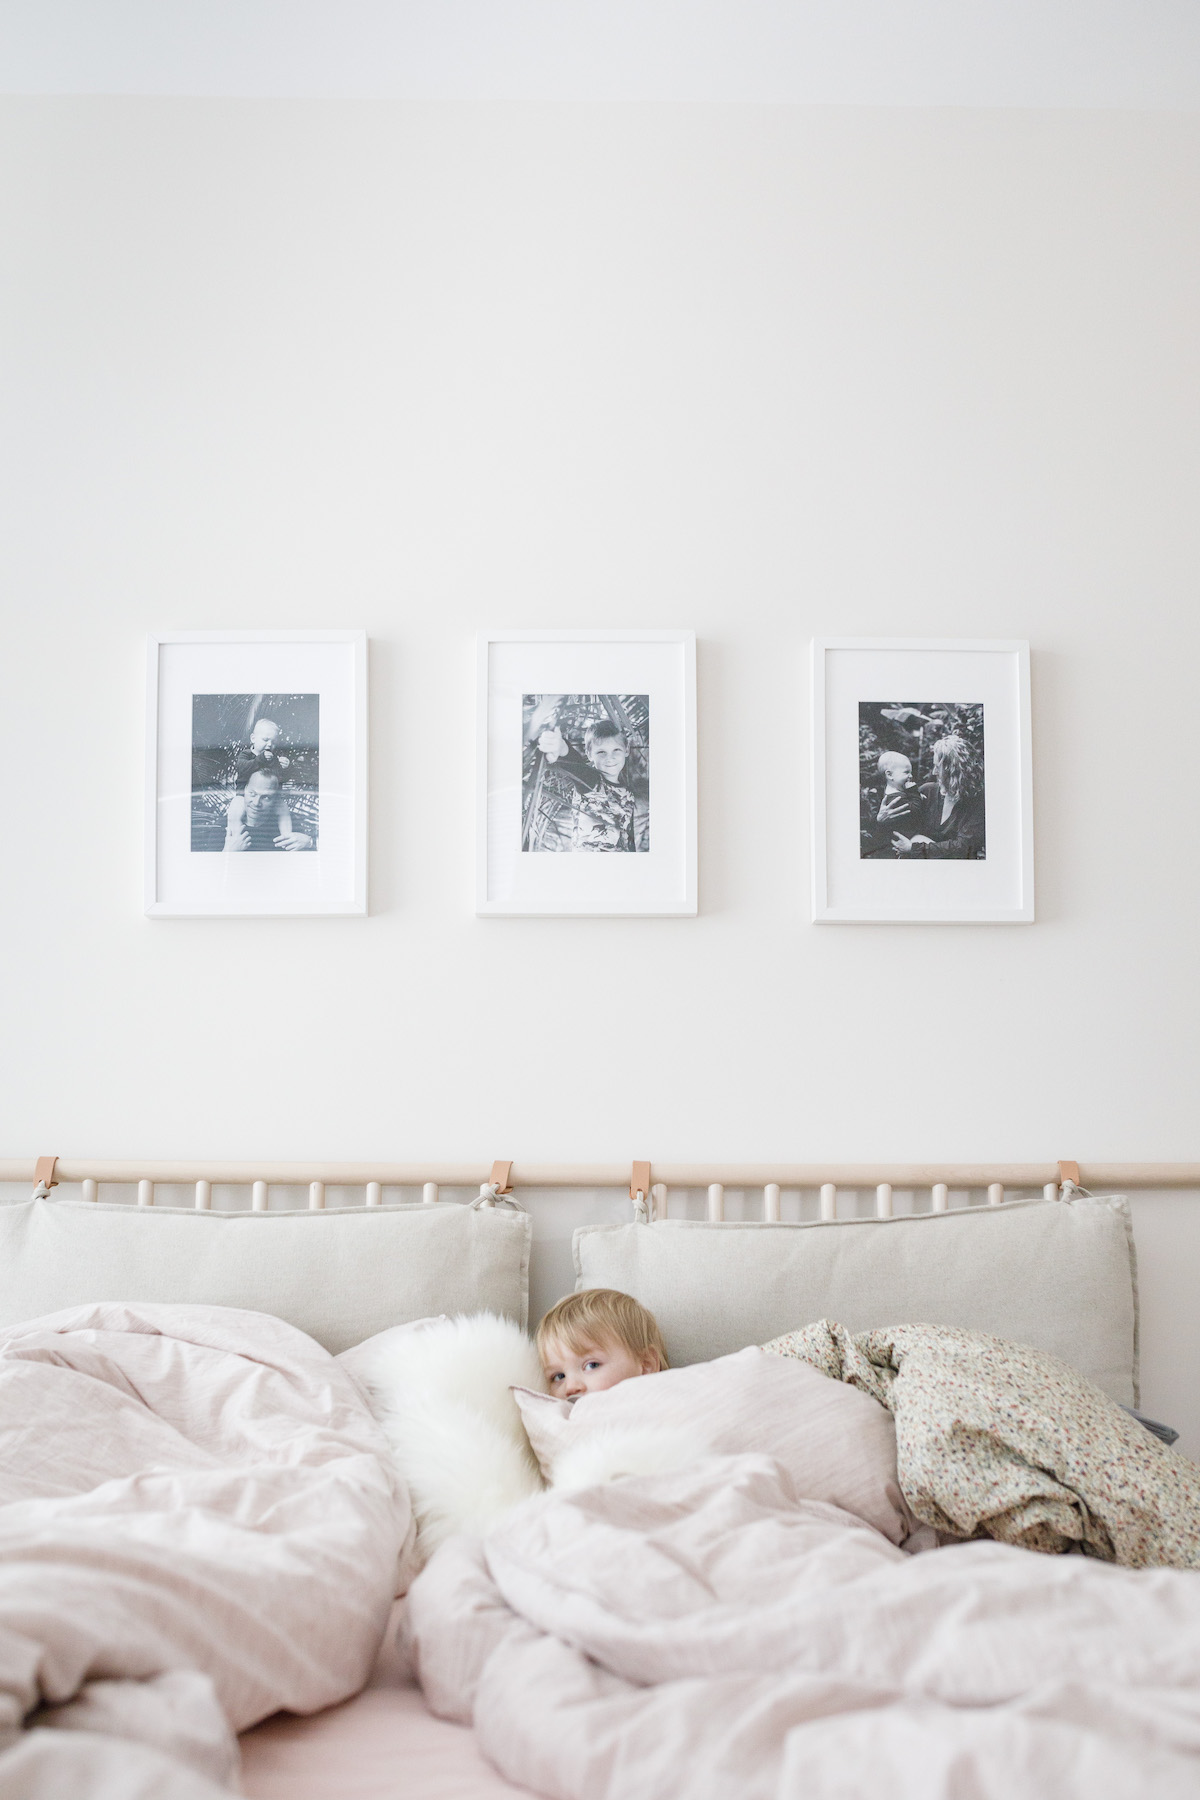 Child curled up under blankets with three Artifact Uprising Gallery Frames filled with family photos overhead.